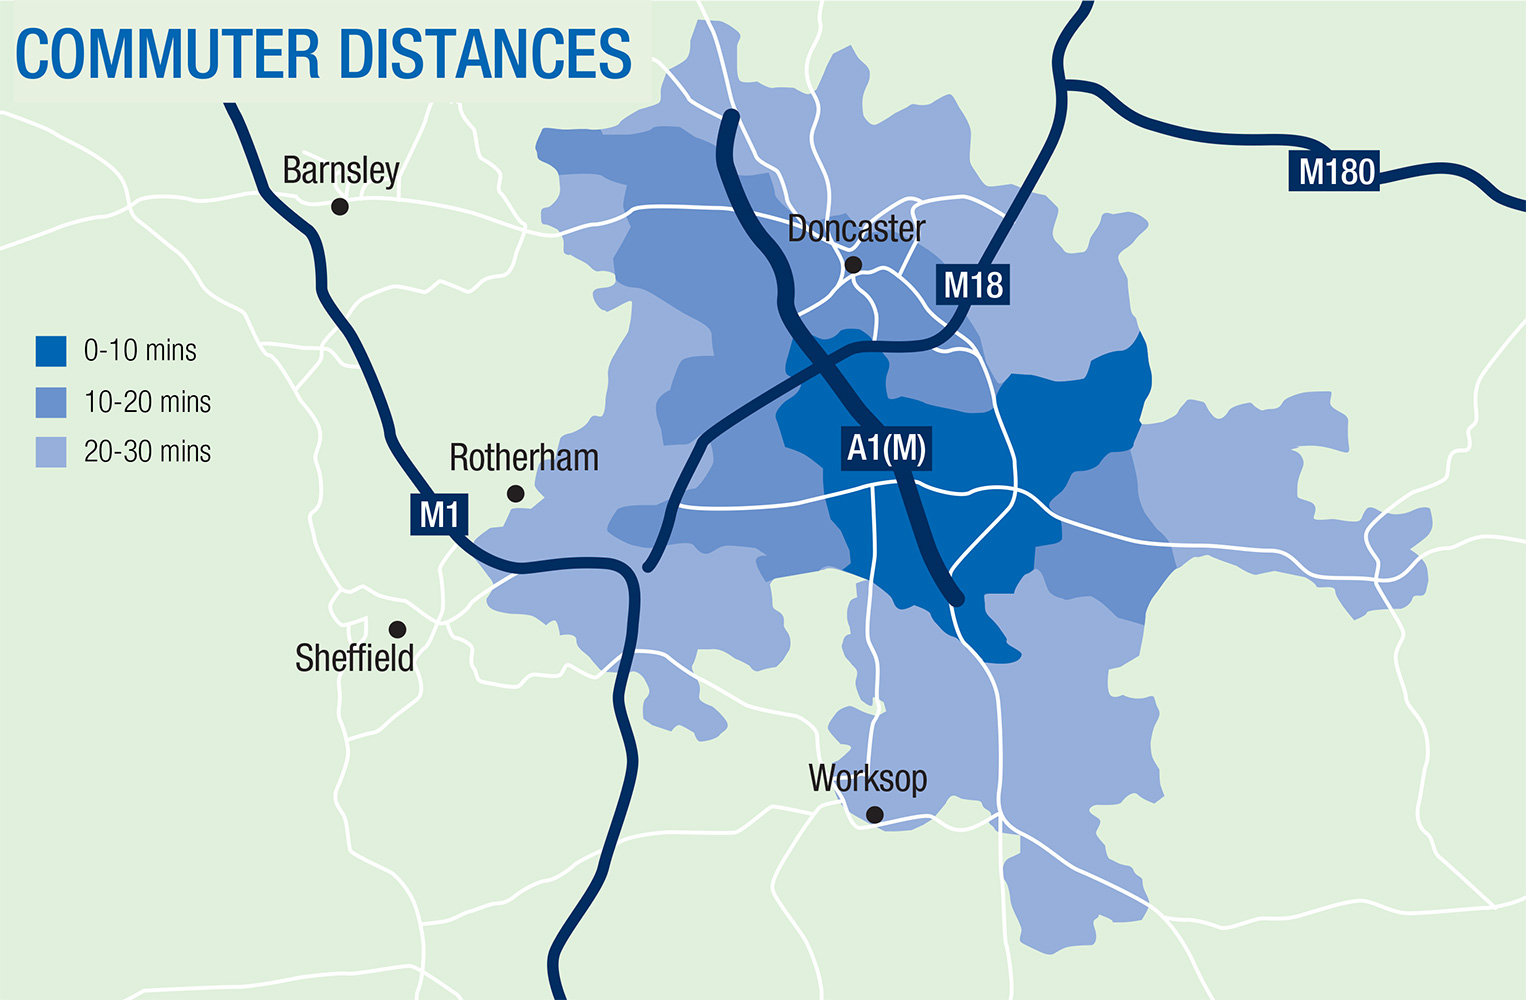 Commuter Distances